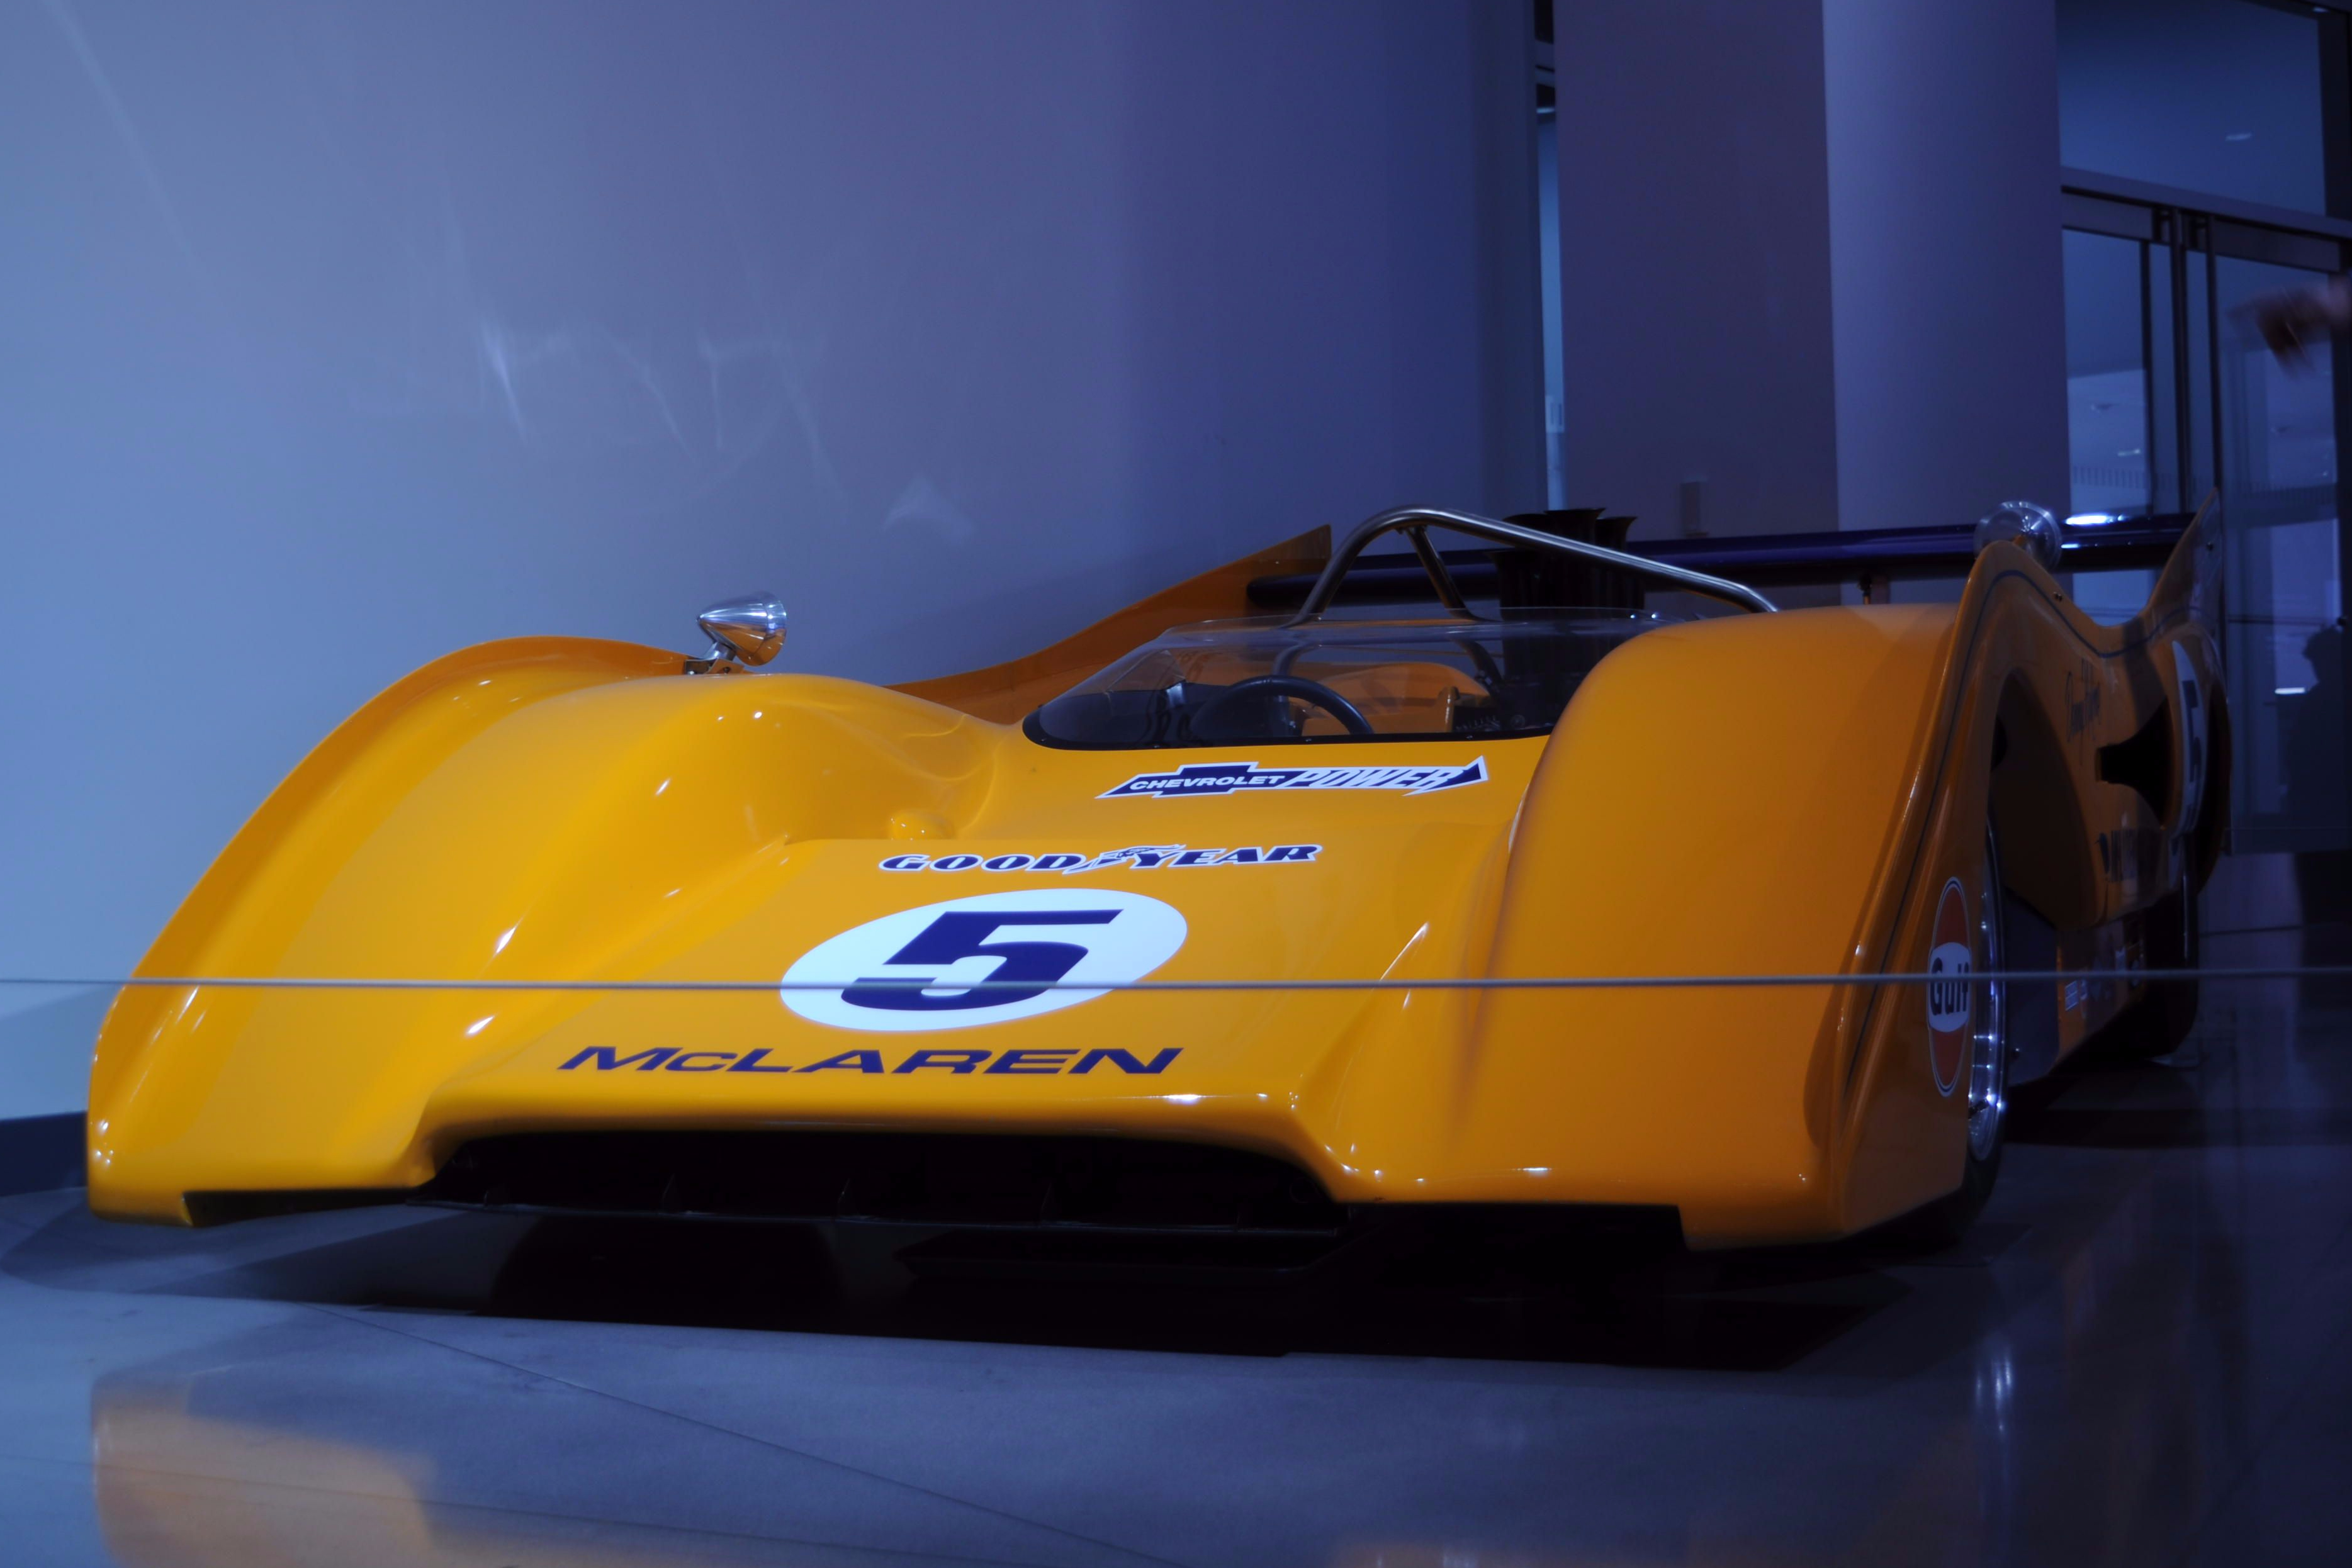 1971 McLaren Can-Am Racecar at Petersen Museum